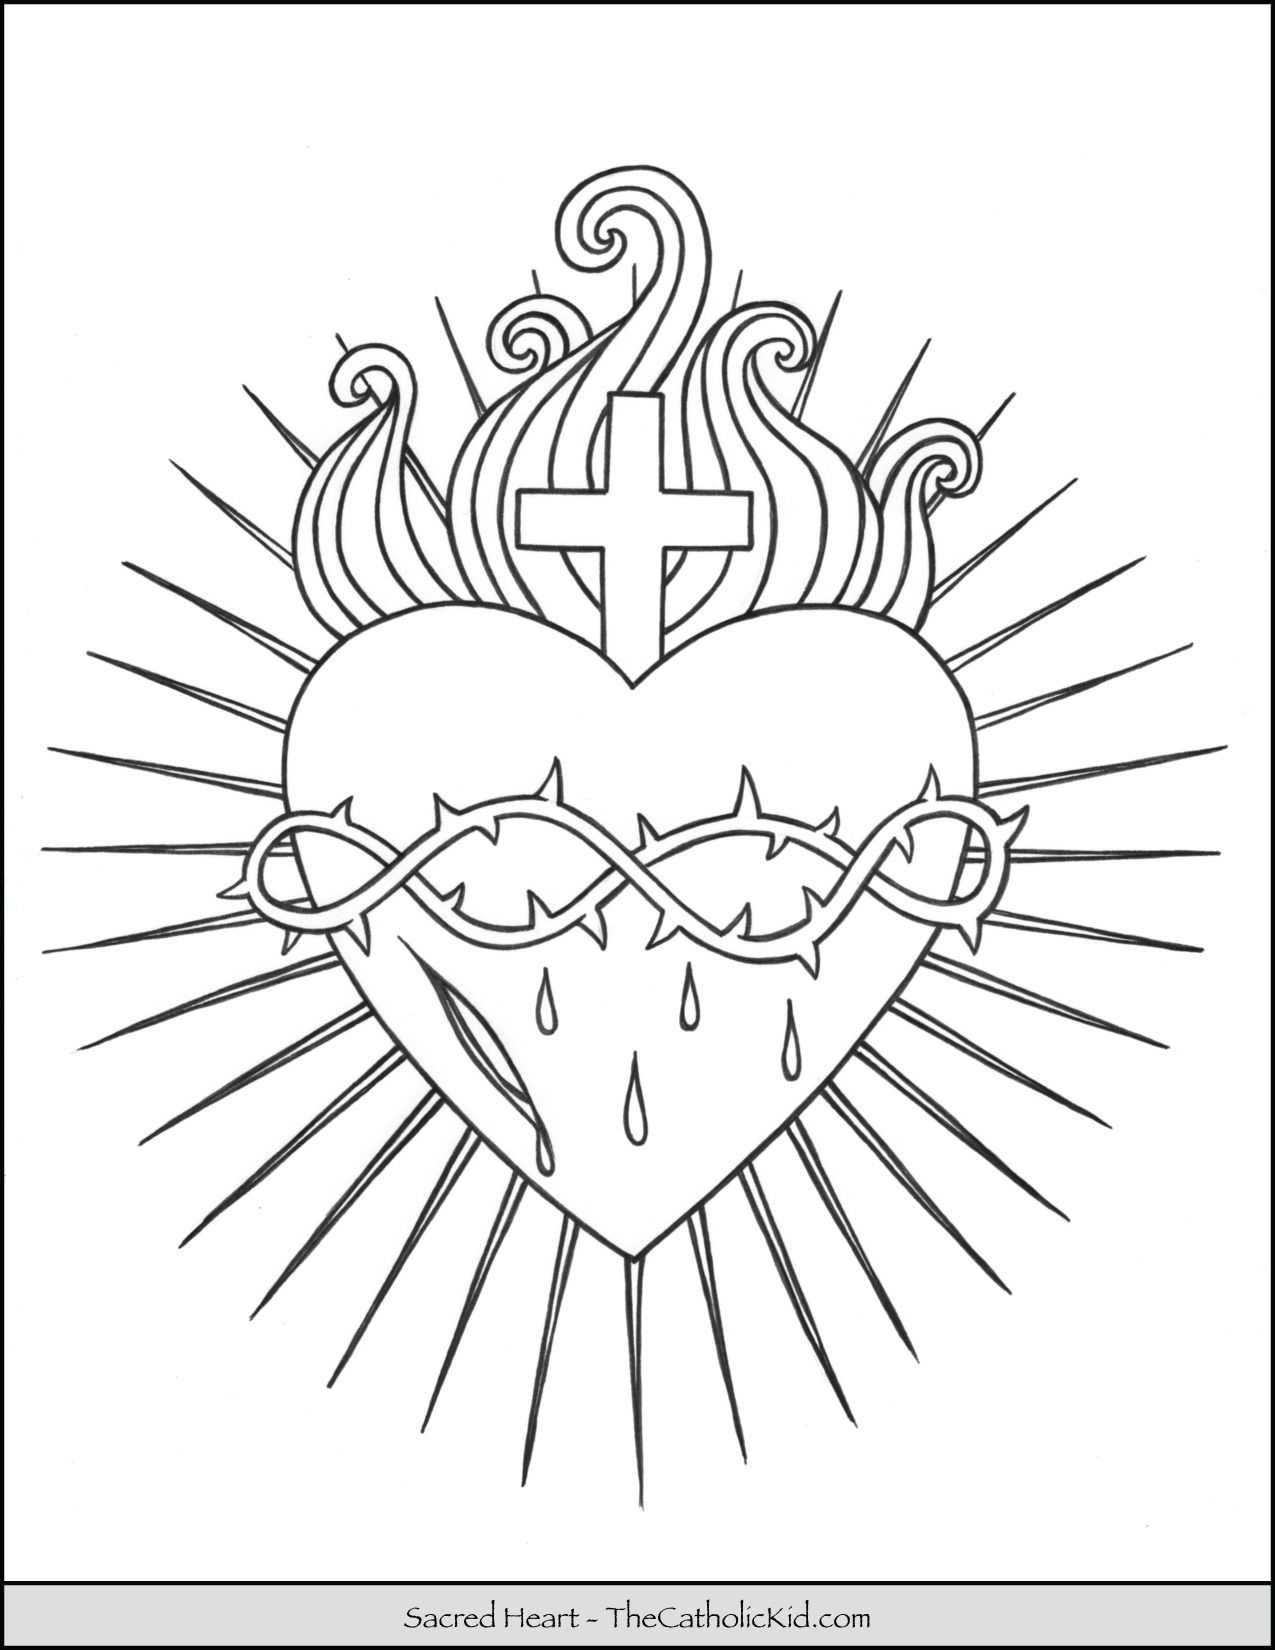 Sacred Heart Coloring Page Thecatholickid Com Heart Coloring Pages Sacred Heart Art Sacred Heart Tattoos